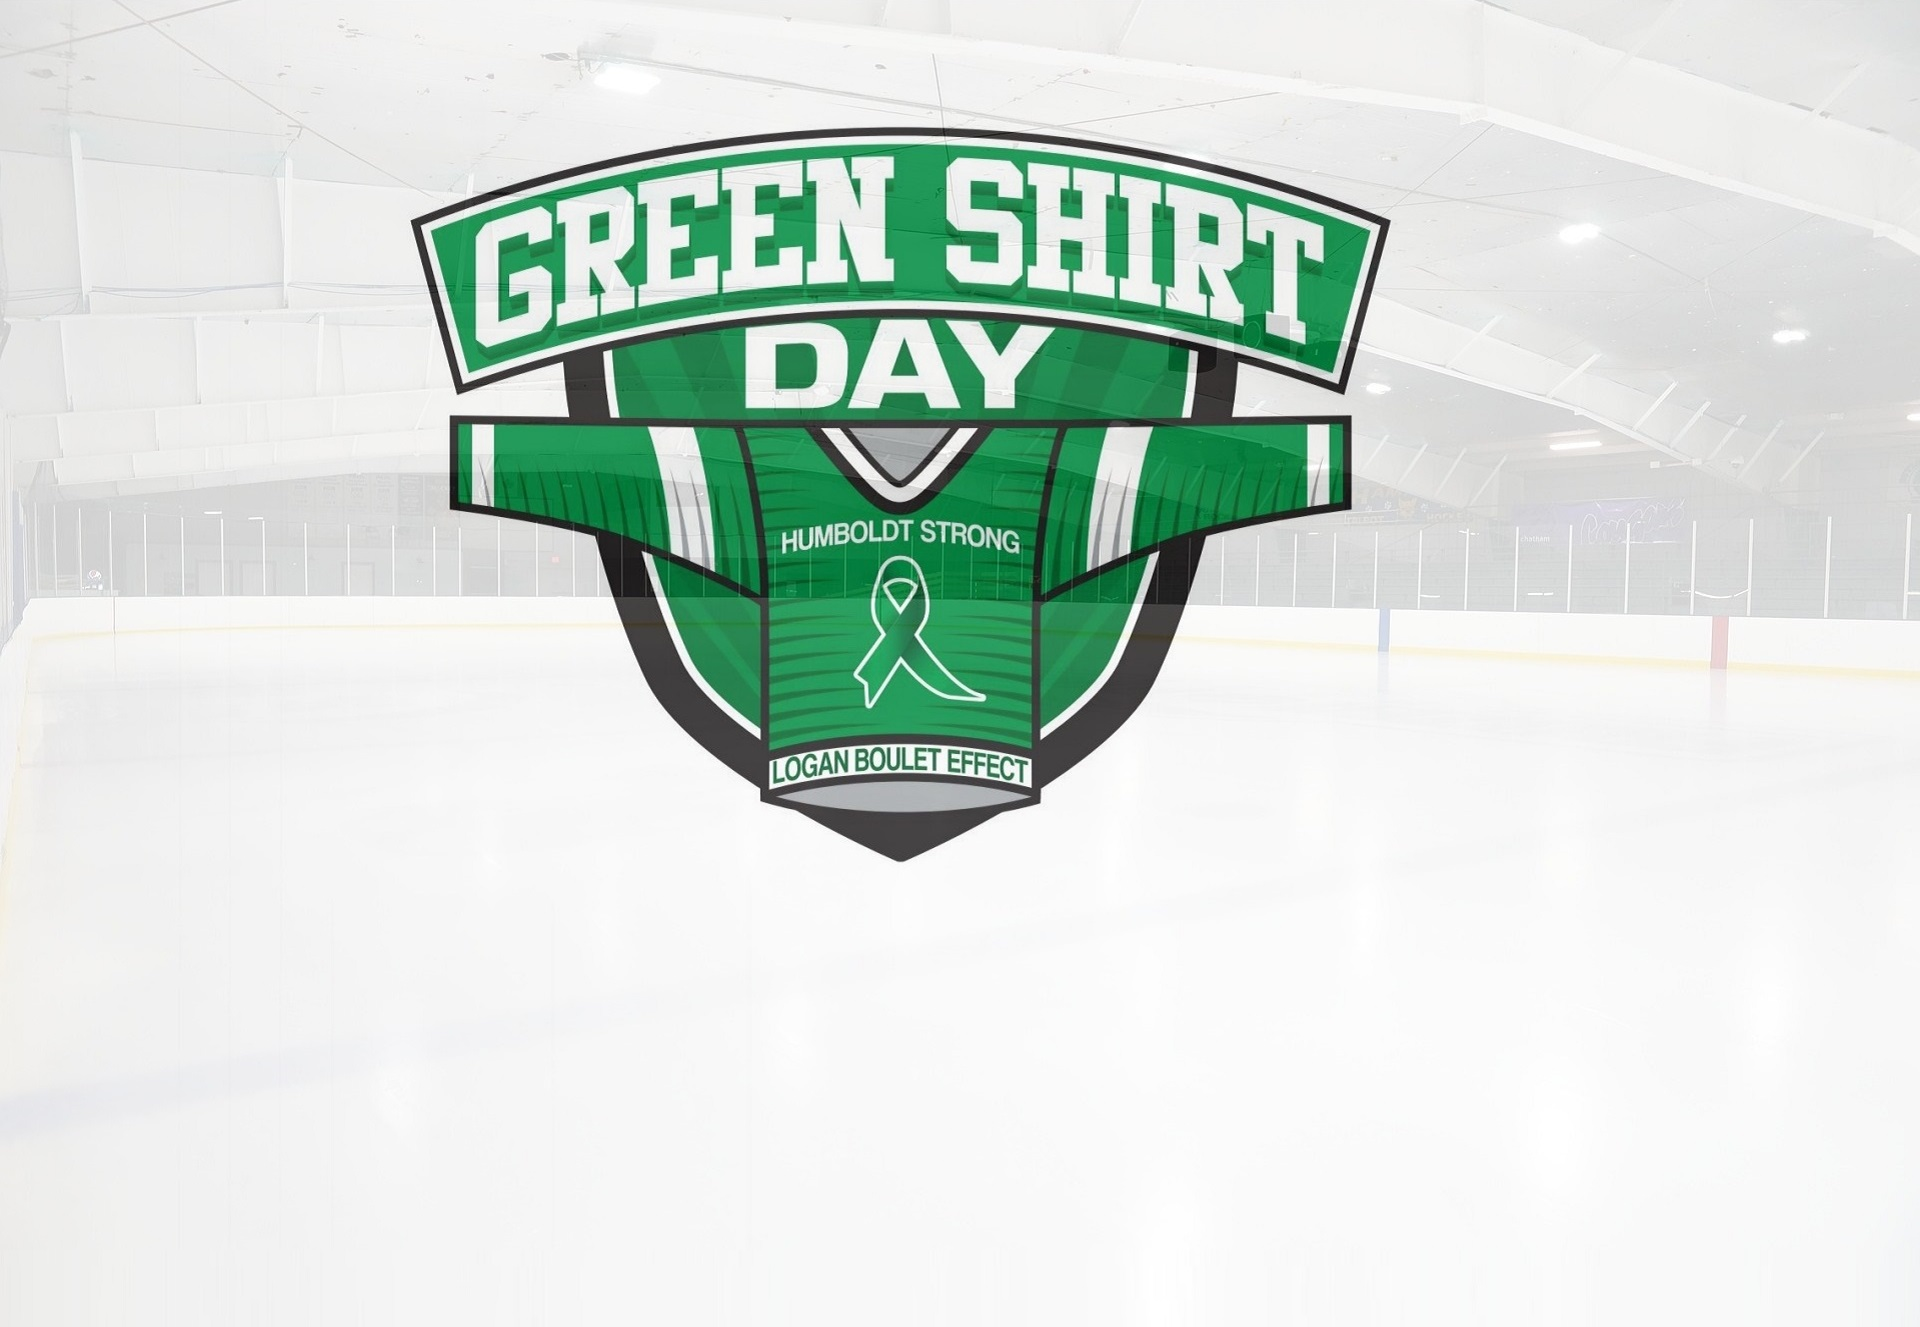 Logan Boulet Effect Green Shirt Day And Positive Healthy Outcomes